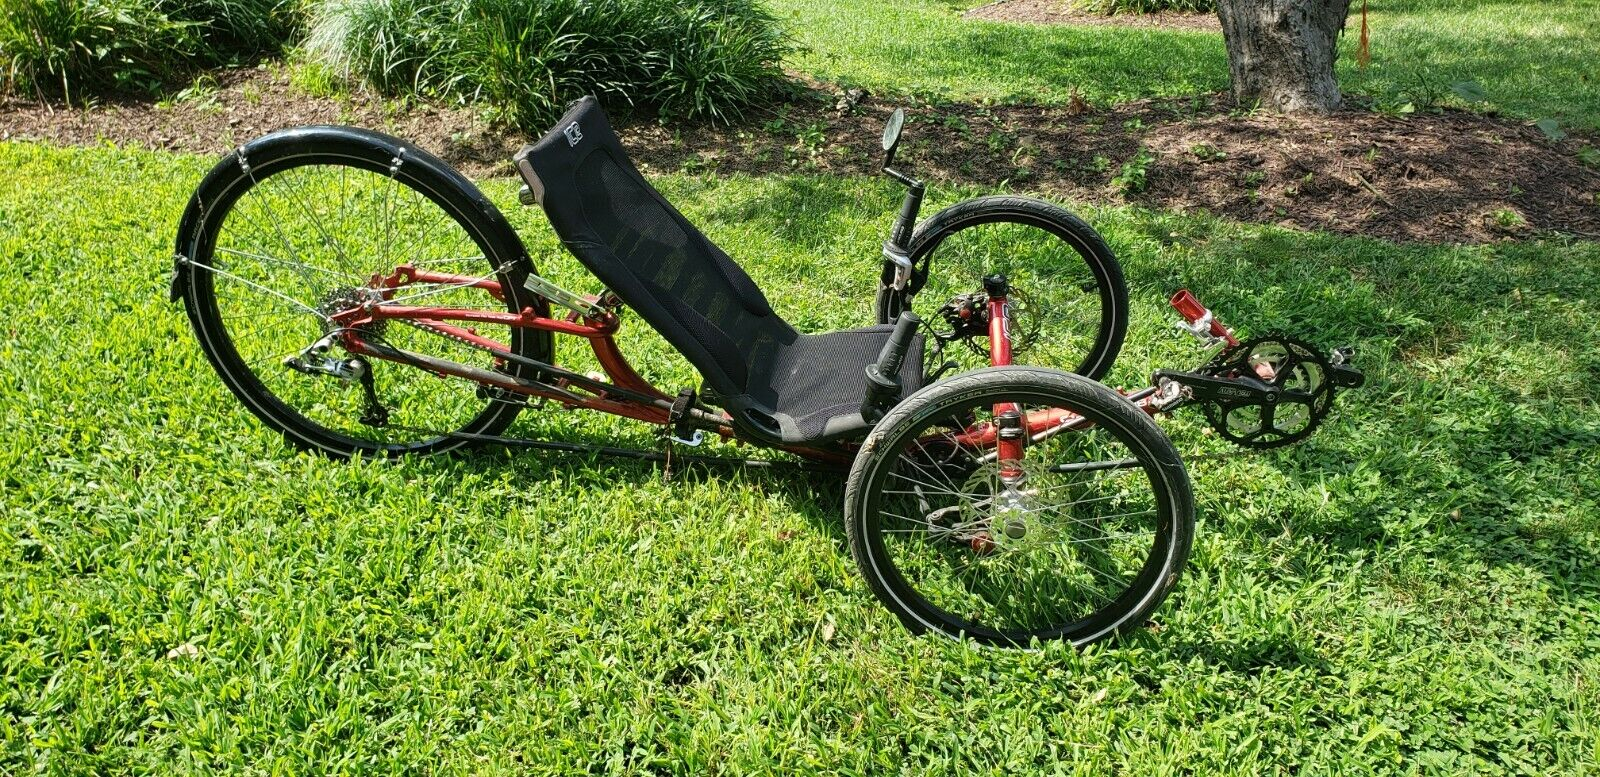 ICE Sprint foldable red recumbent tricycle in great condition (Used - 2500 USD)